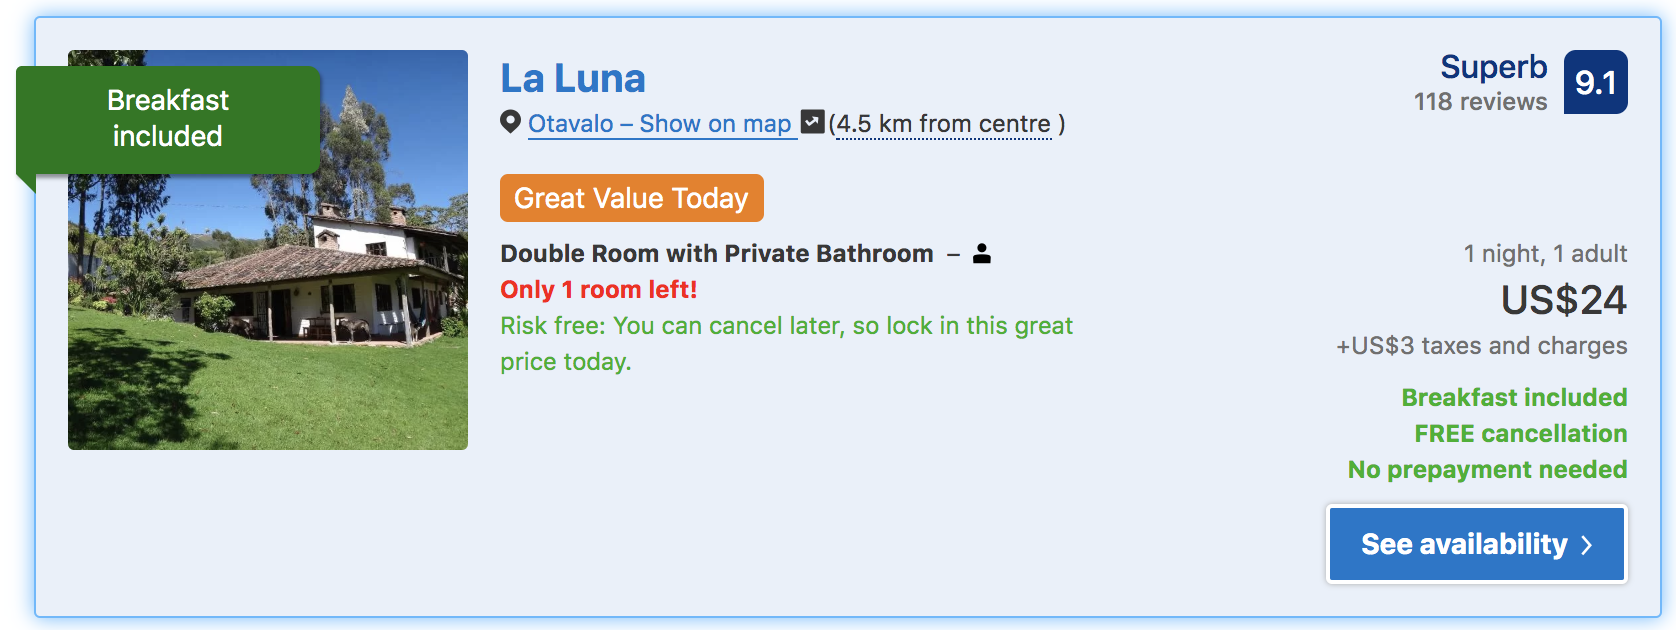 where to stay in otavalo la luna guesthouse